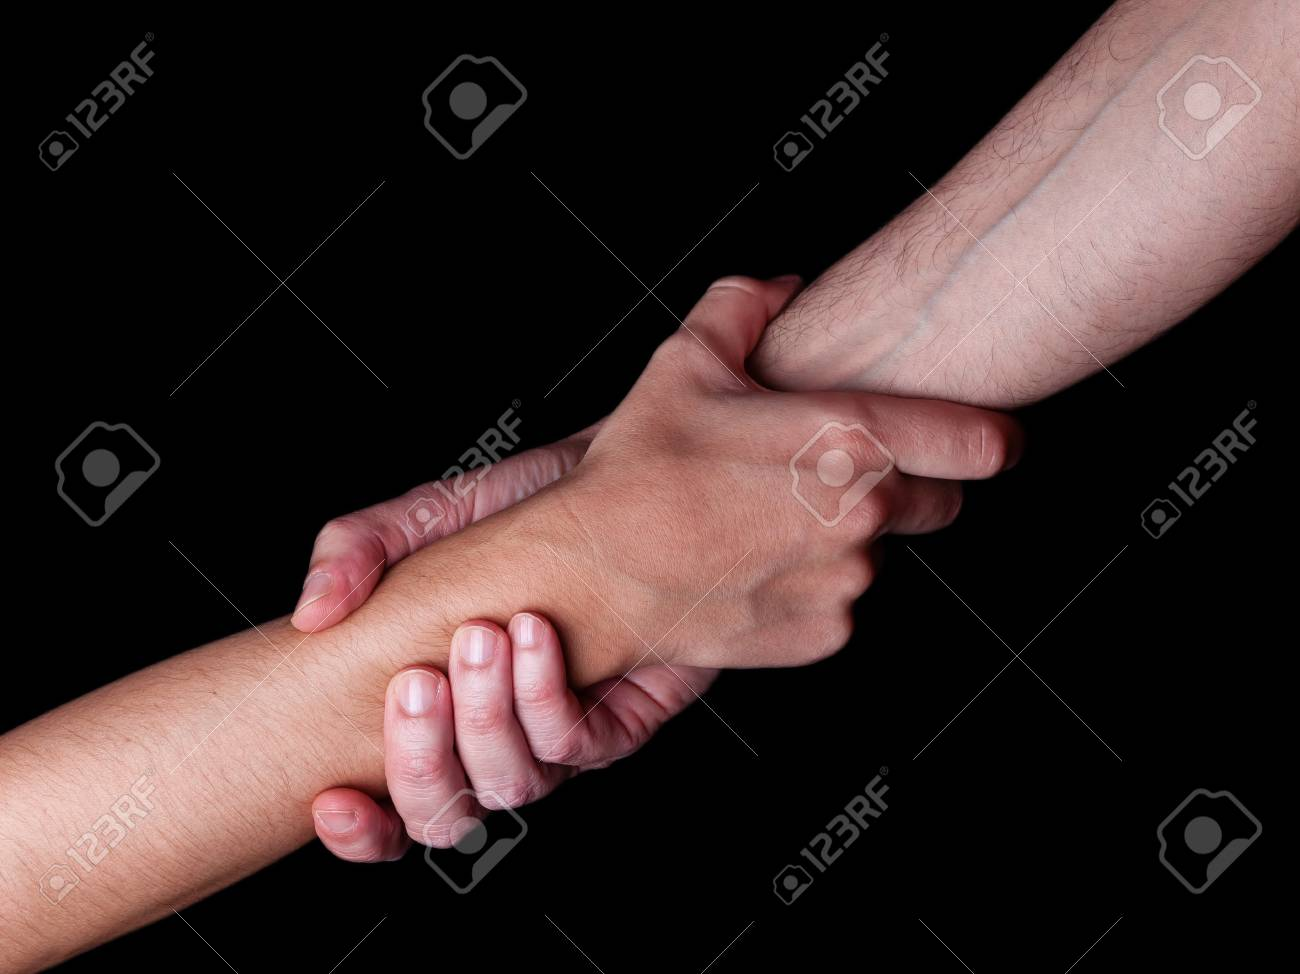 Man saving, rescuing and helping woman by holding or griping the forearm. Male hand and arm pulling up female. Concept of rescue, love, friendship, support, teamwork, partnership, reaching, couple - 91318734